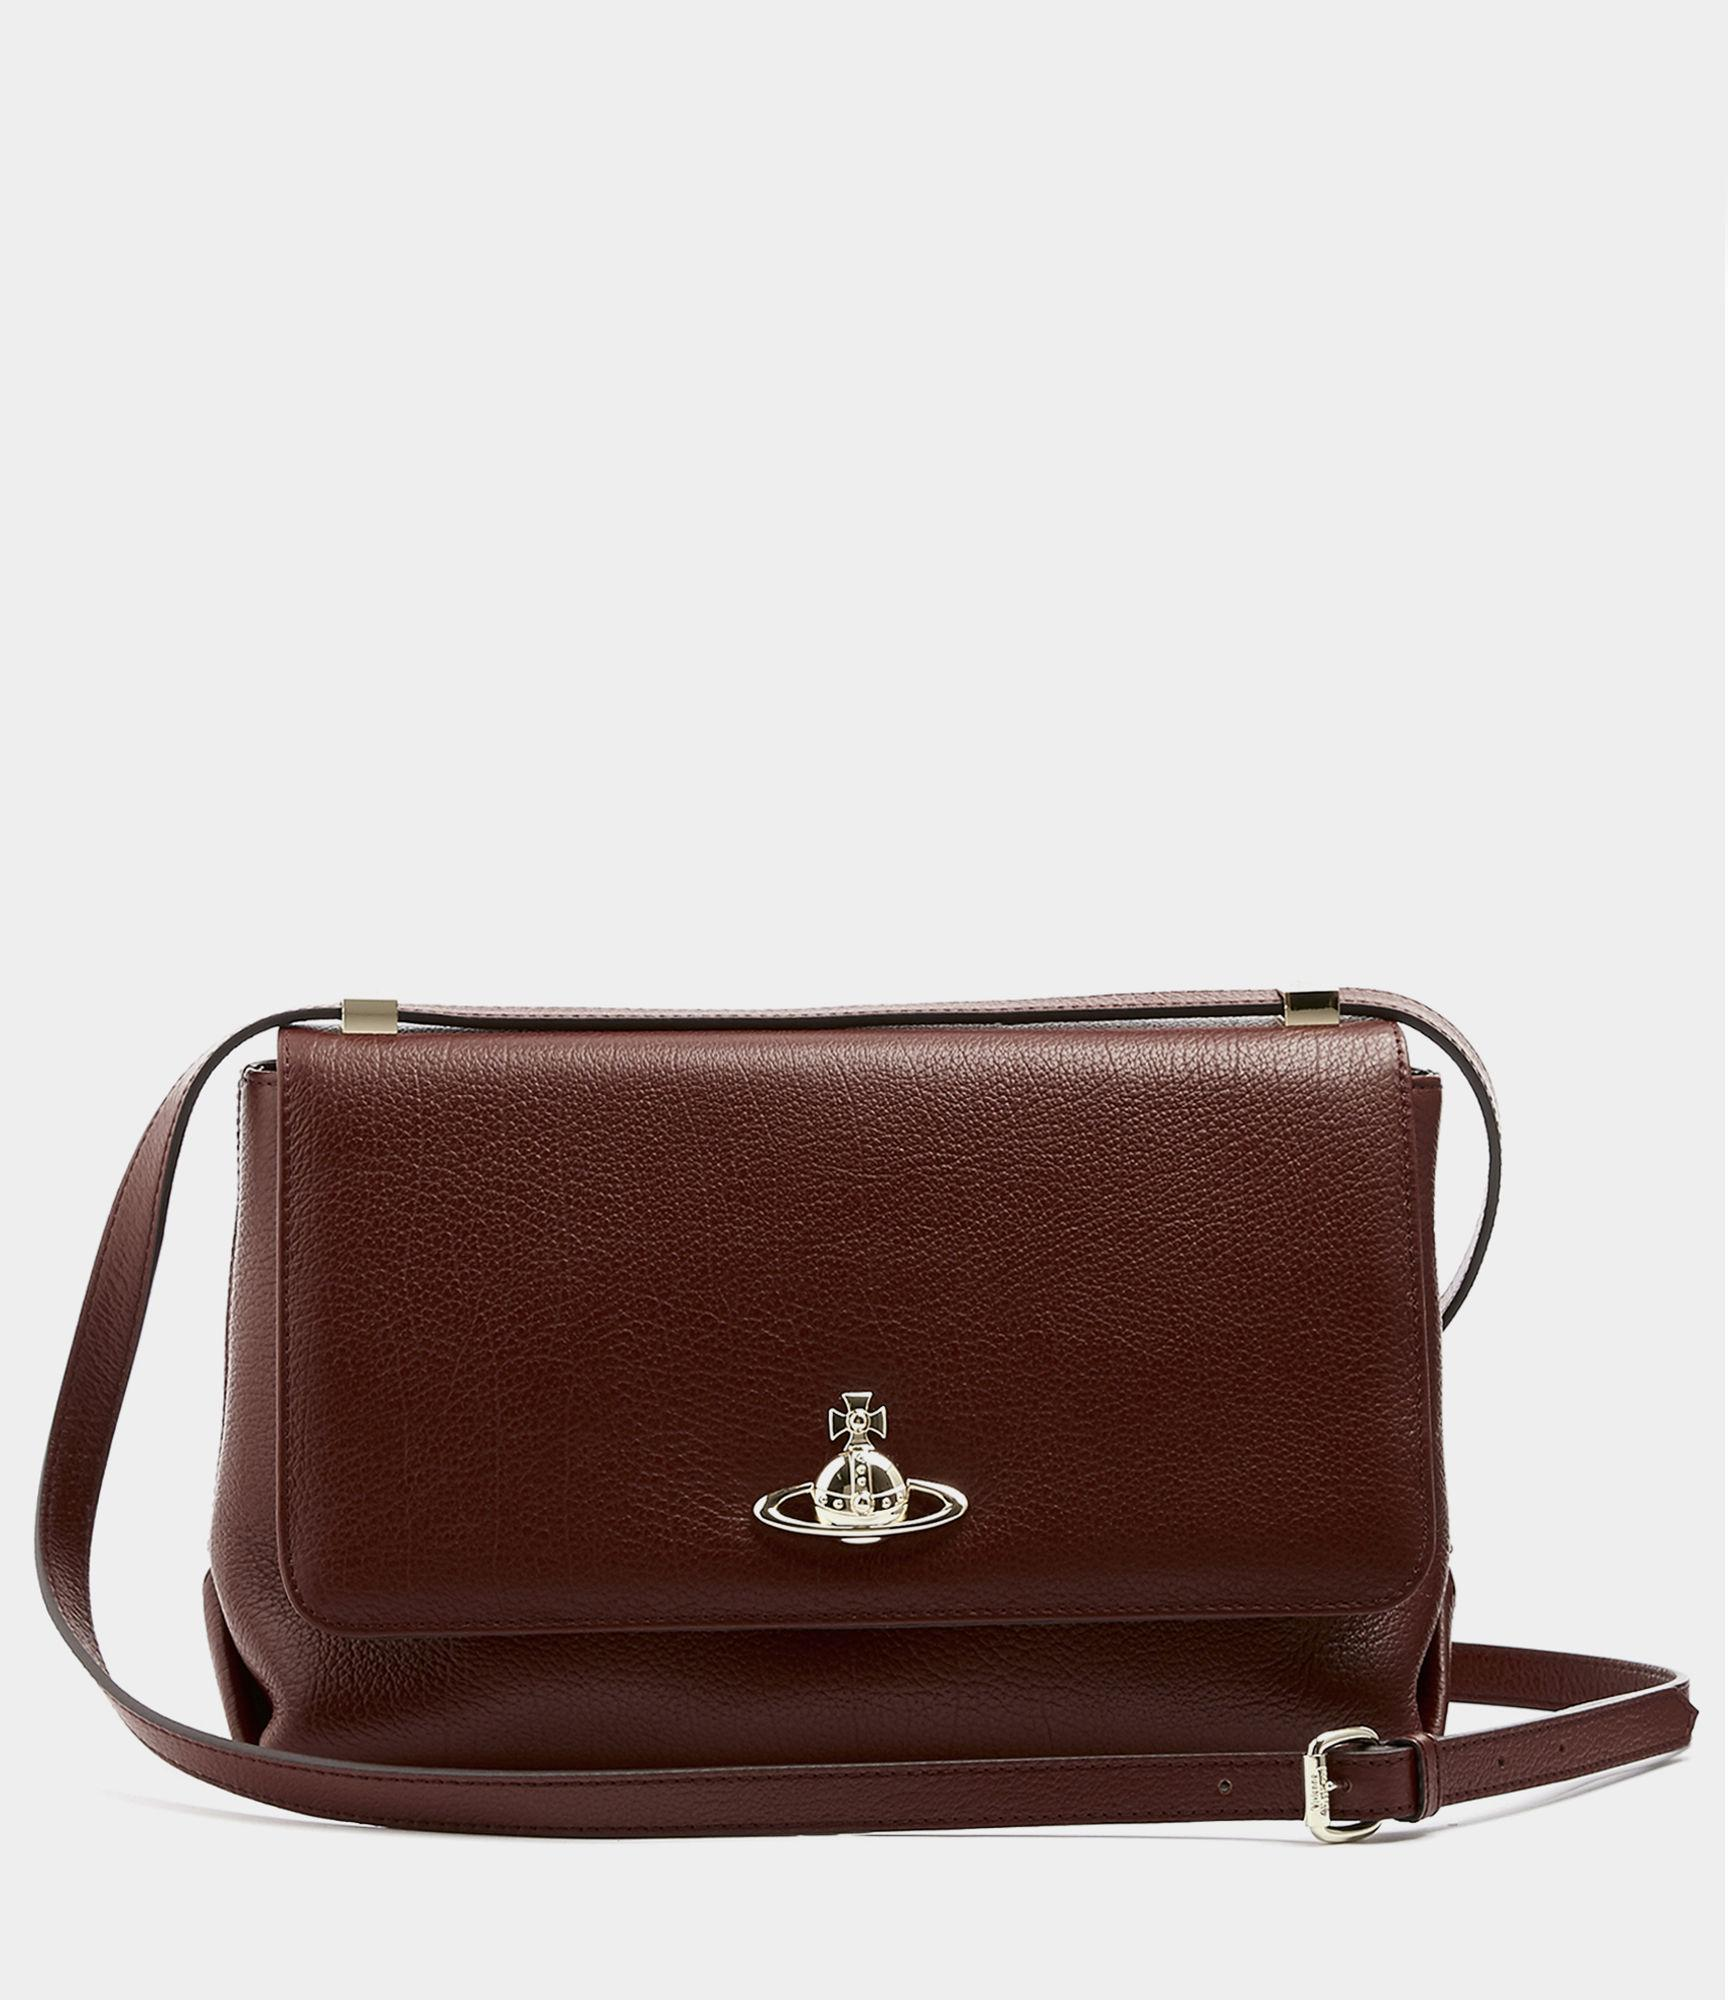 902e2f2edc3f Vivienne Westwood - Brown Balmoral Large Bag With Flap - Lyst. View  fullscreen